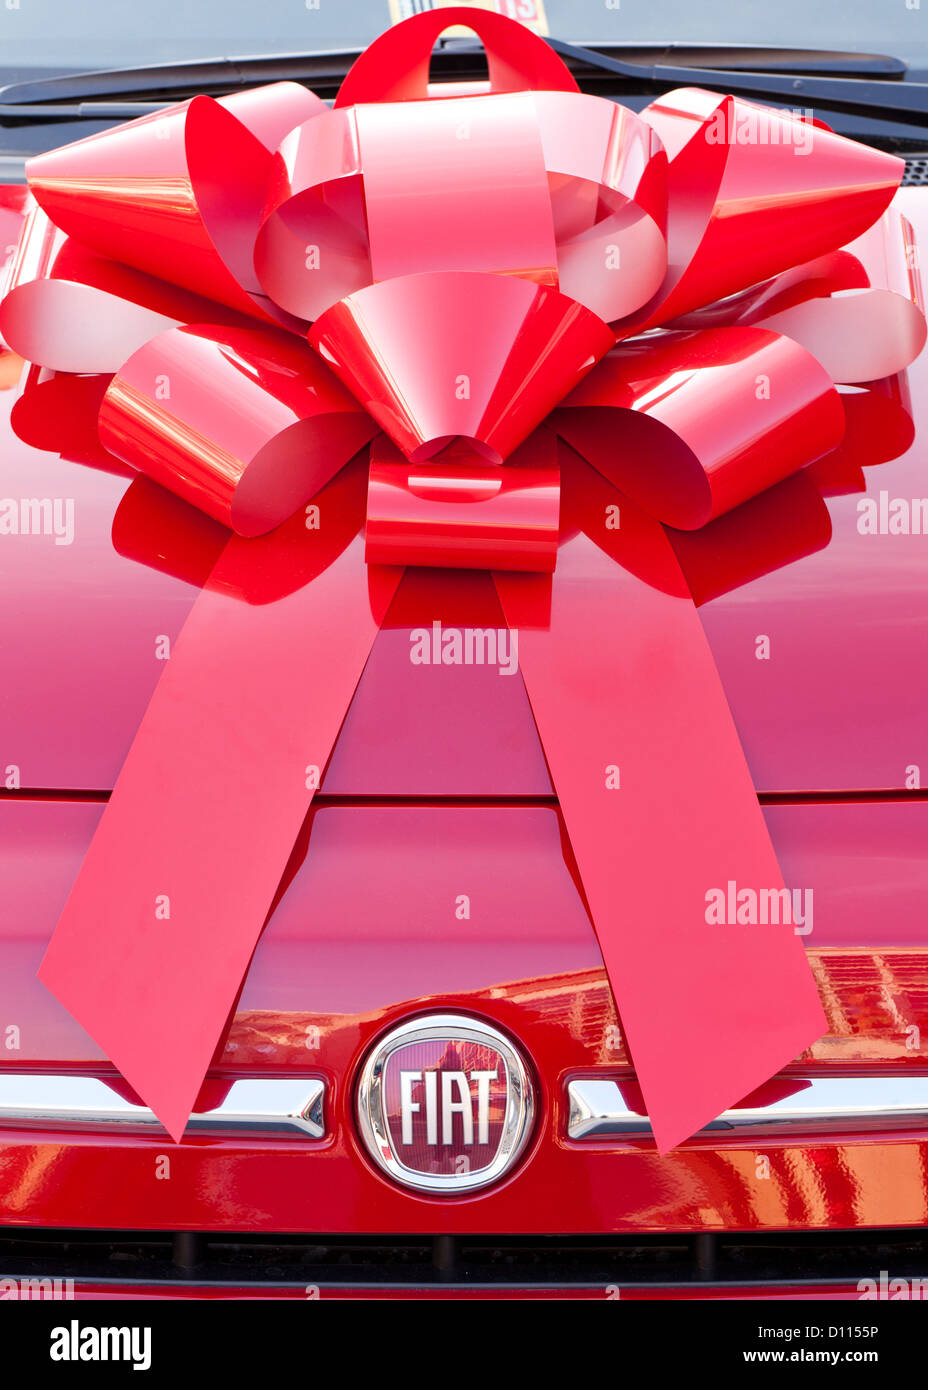 Ribbon on hood of car - Stock Image